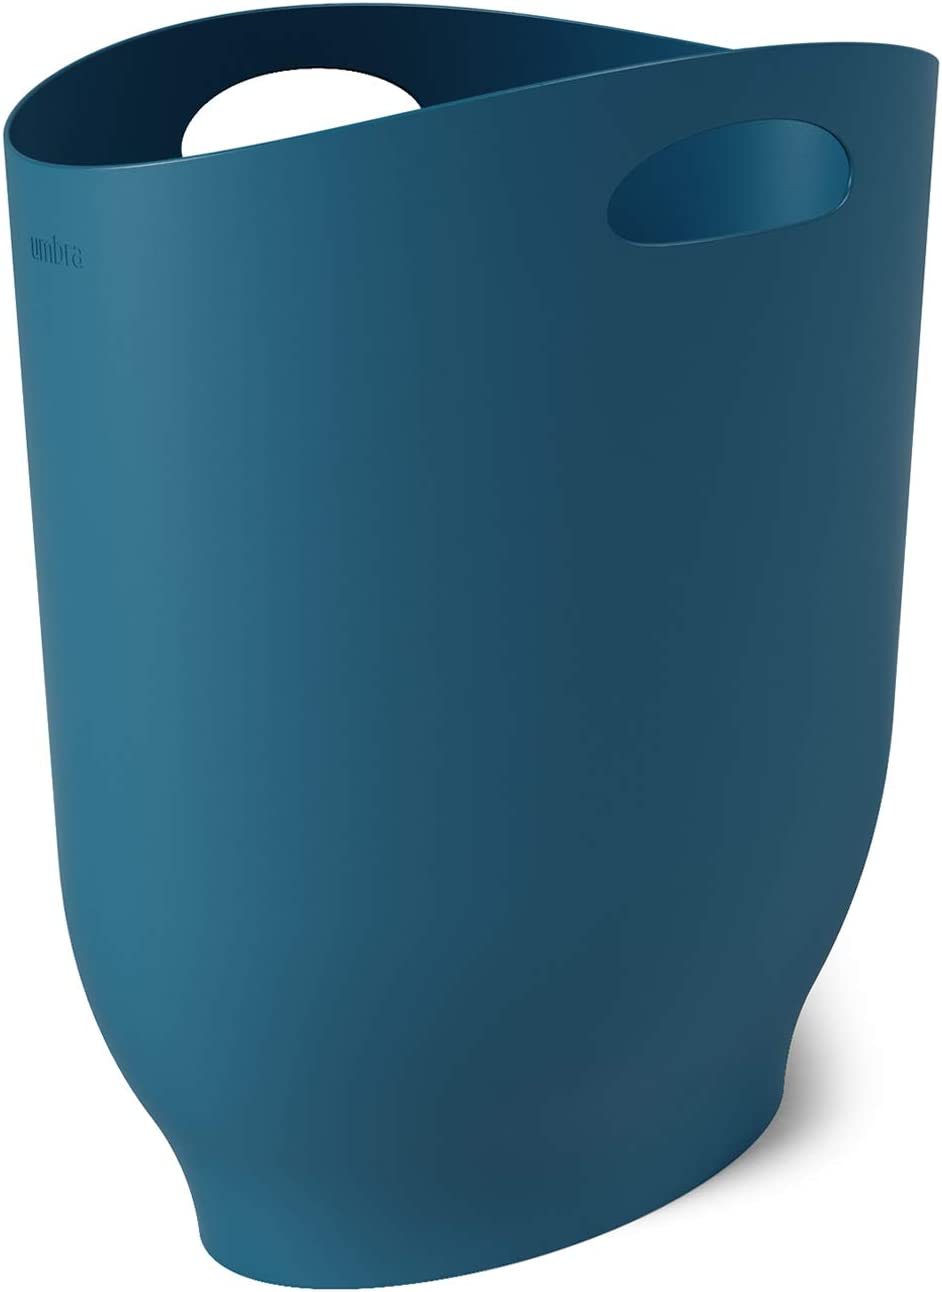 Umbra 1012181-1163 , Lagoon Blue Harlo Sleek & Stylish Bathroom Trash, Small Garbage Can Wastebasket for Narrow Spaces at Home or Office, 2.4 Gallon Capacity,7 x 13 x 12